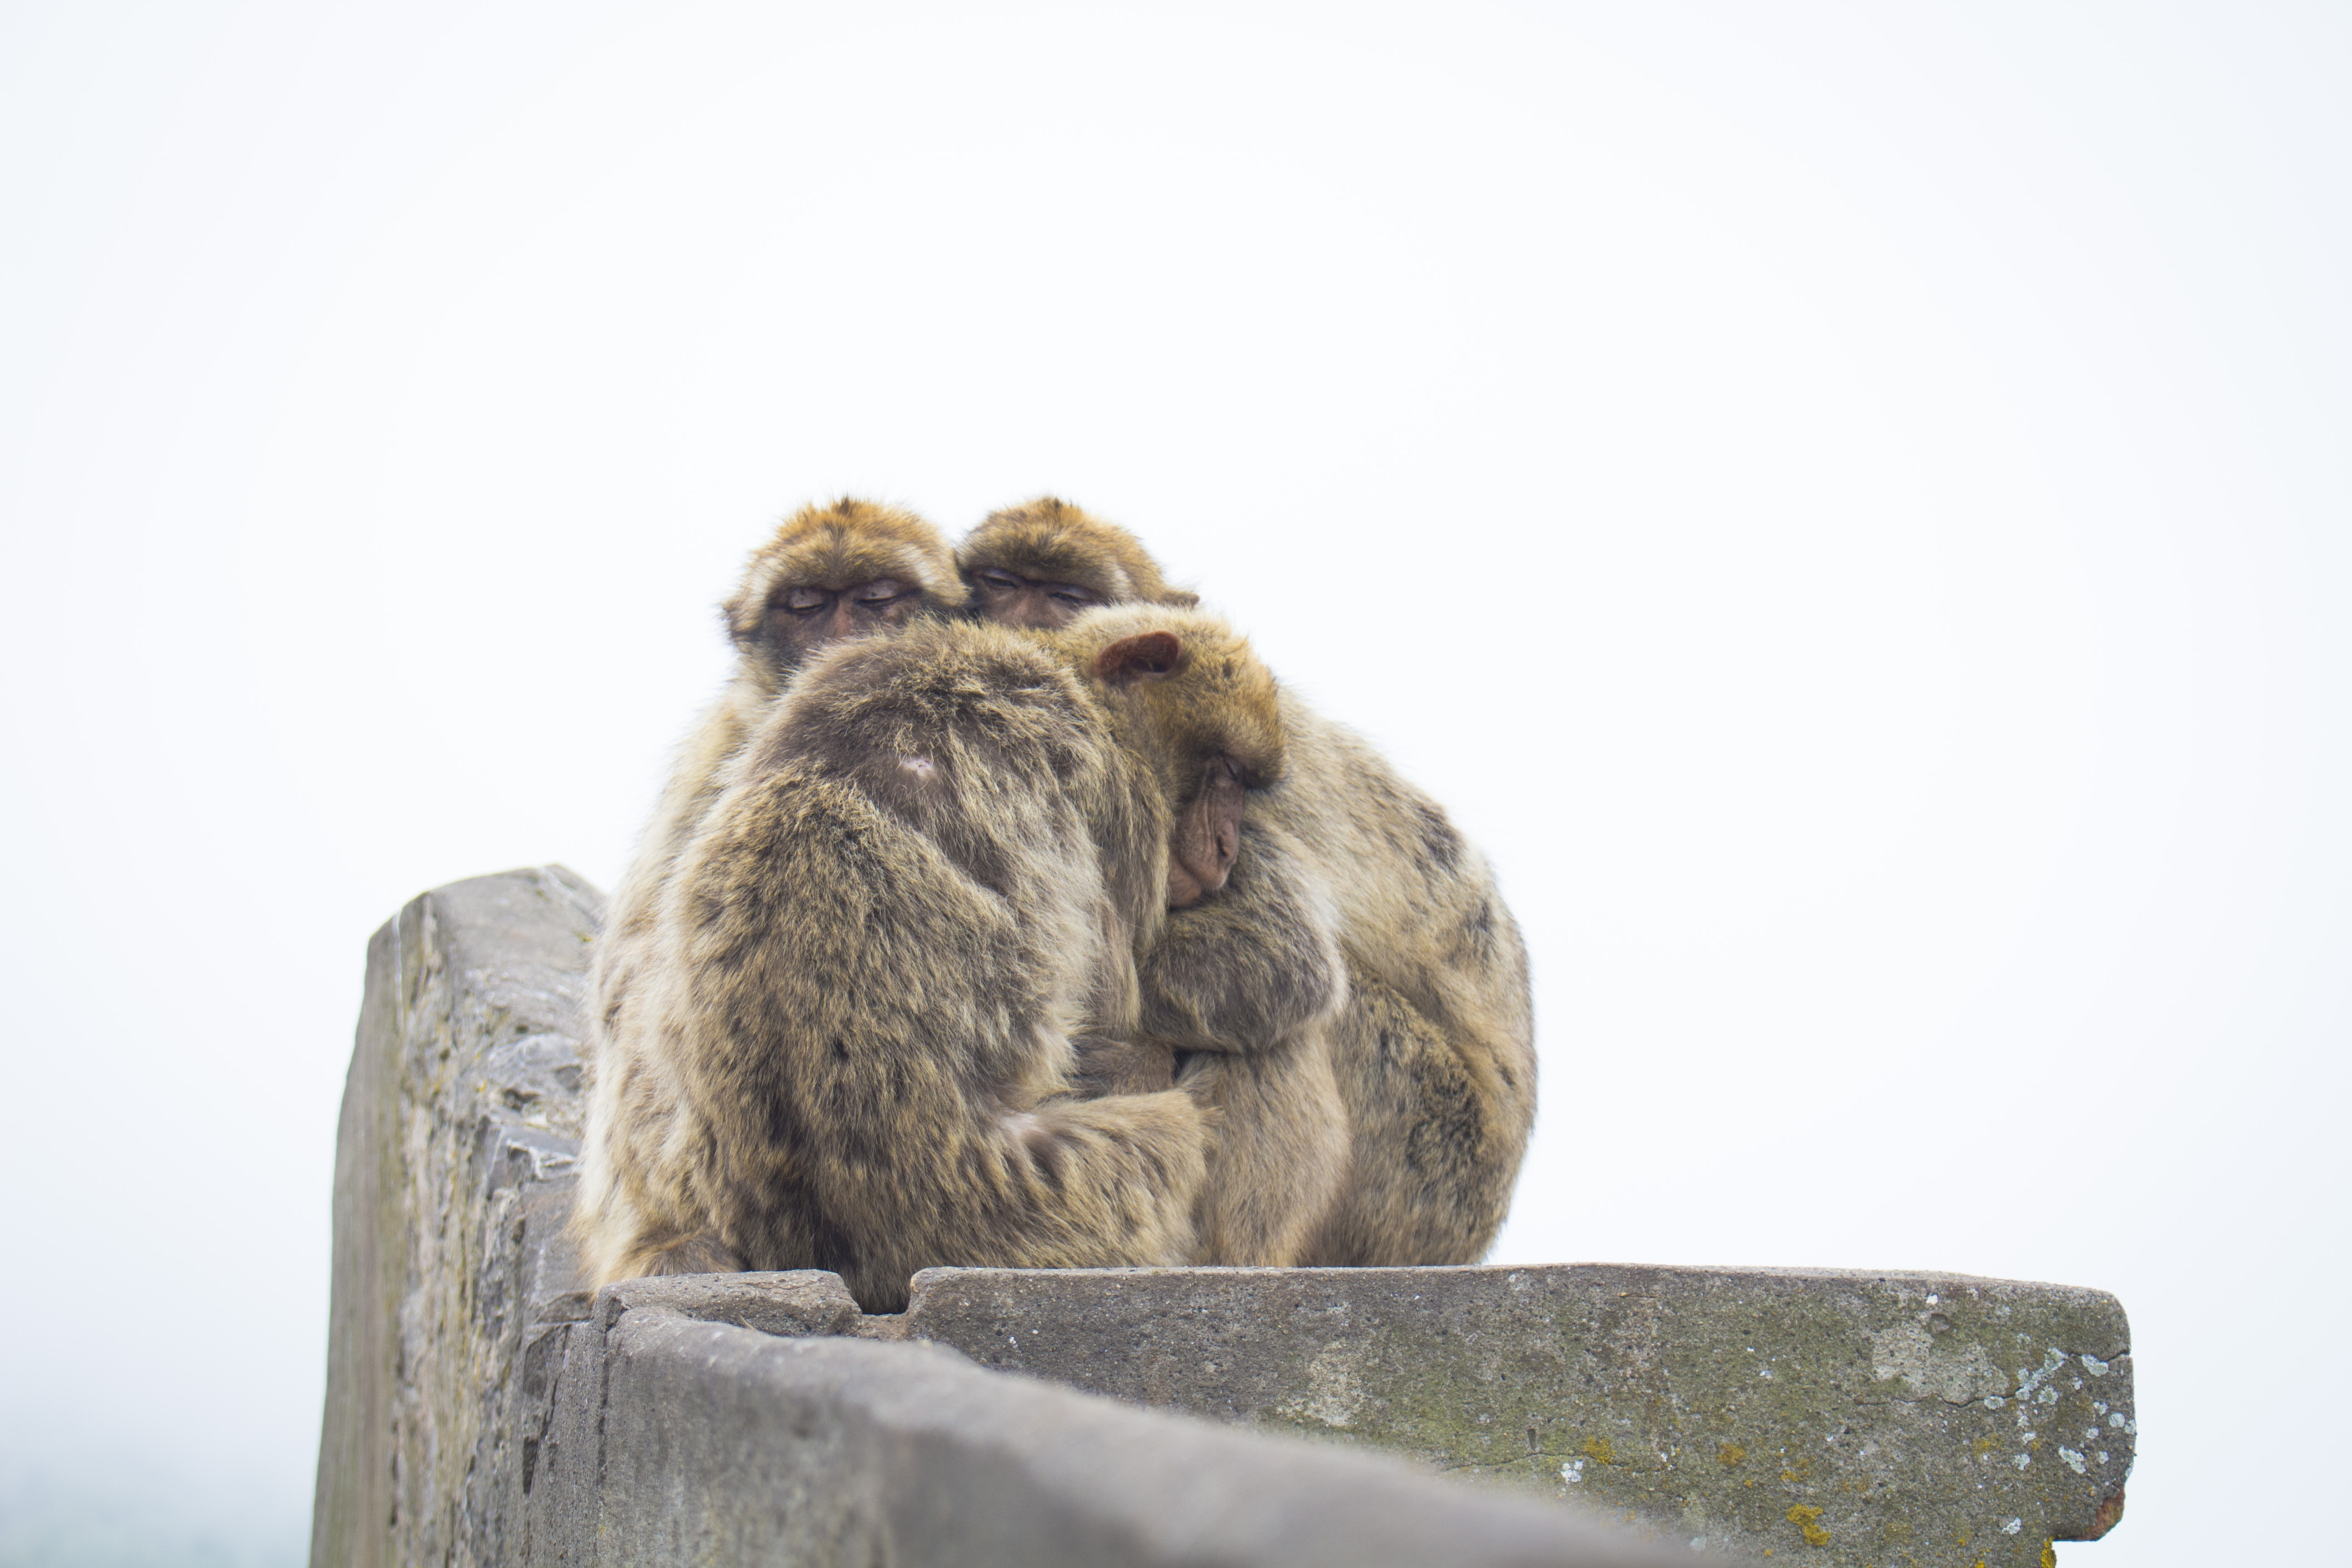 Group of monkeys on a snowy day in Gibraltar huddle against the cold on a stone wall